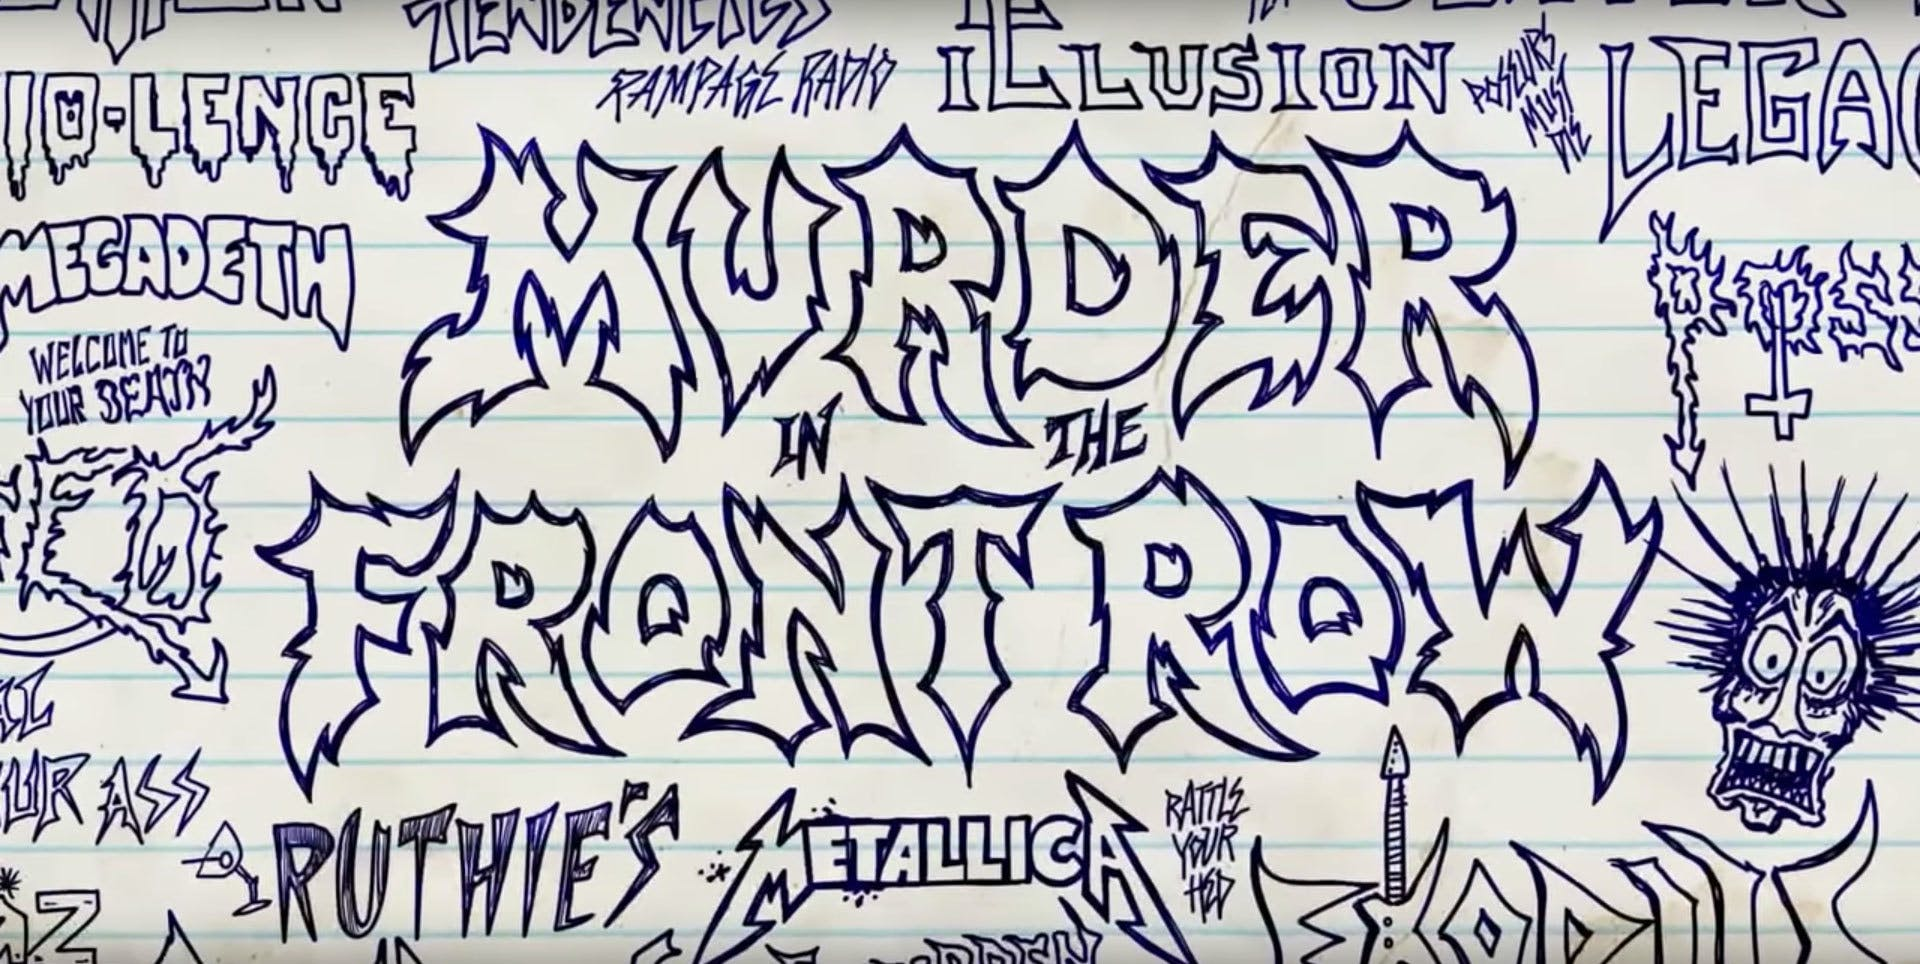 Metallica, Slayer, Megadeth And More Appear In New Bay Area Thrash Documentary